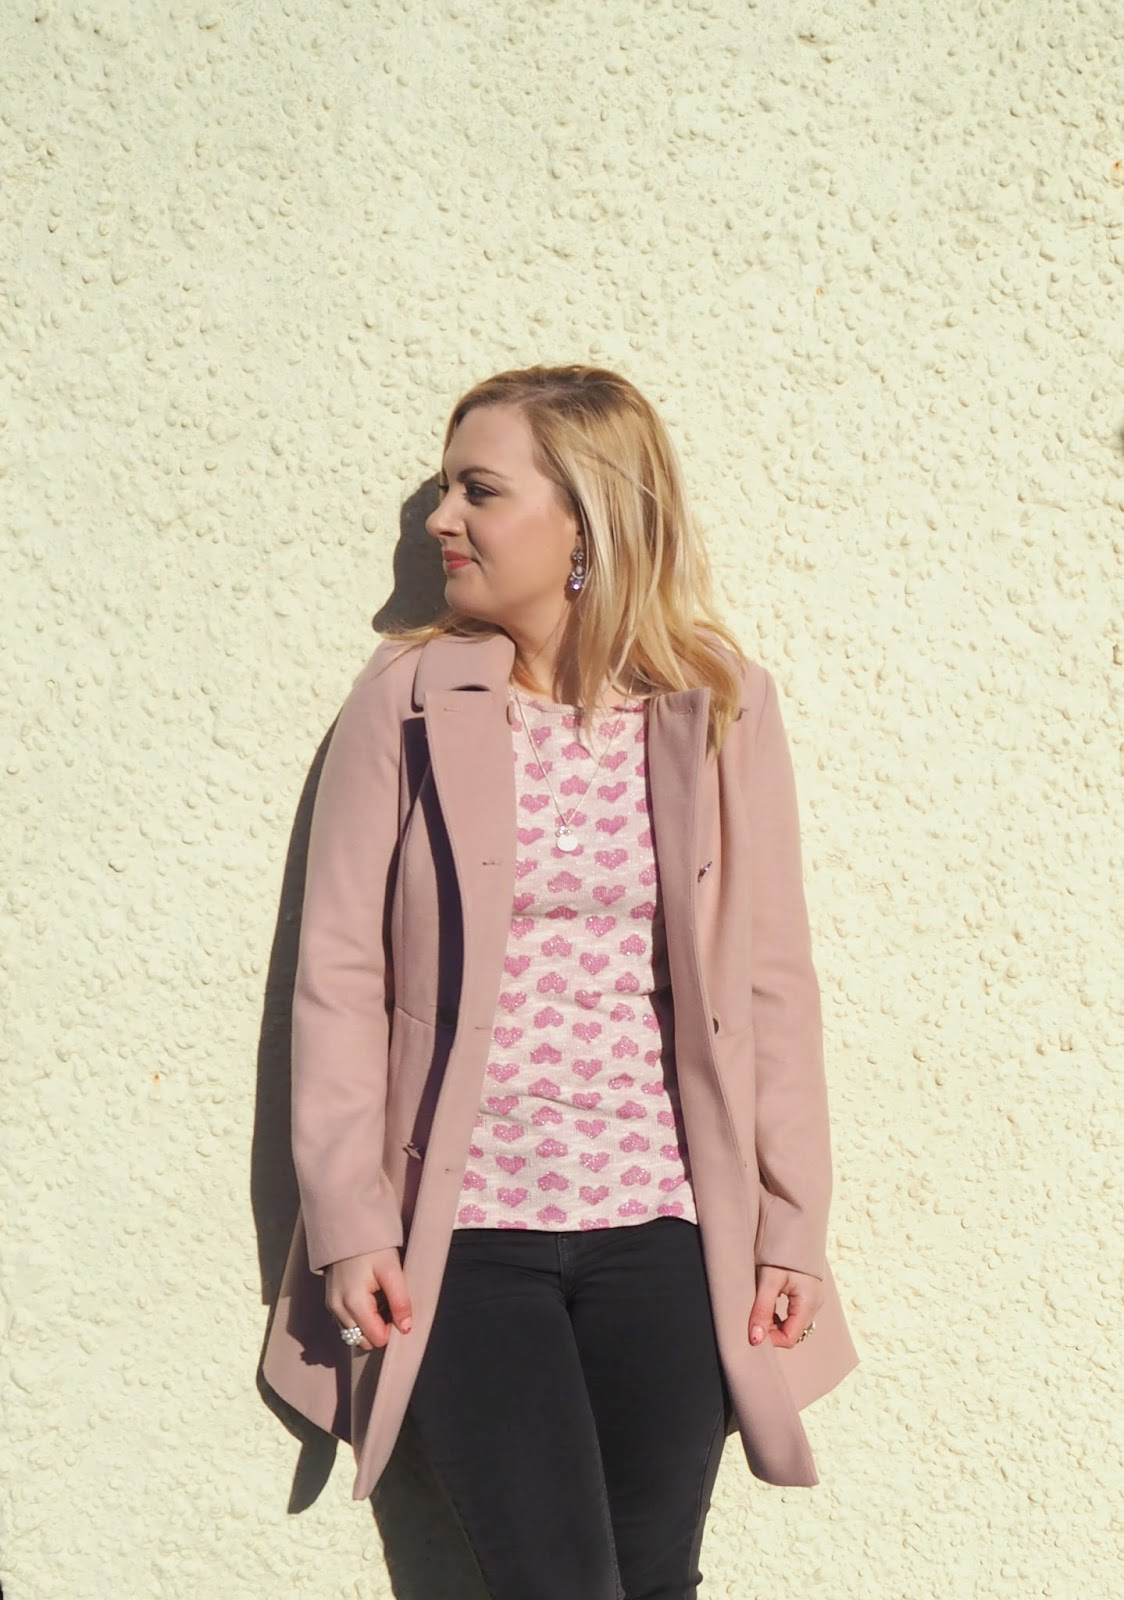 You Make Me Blush: Outfit | Katie Kirk Loves